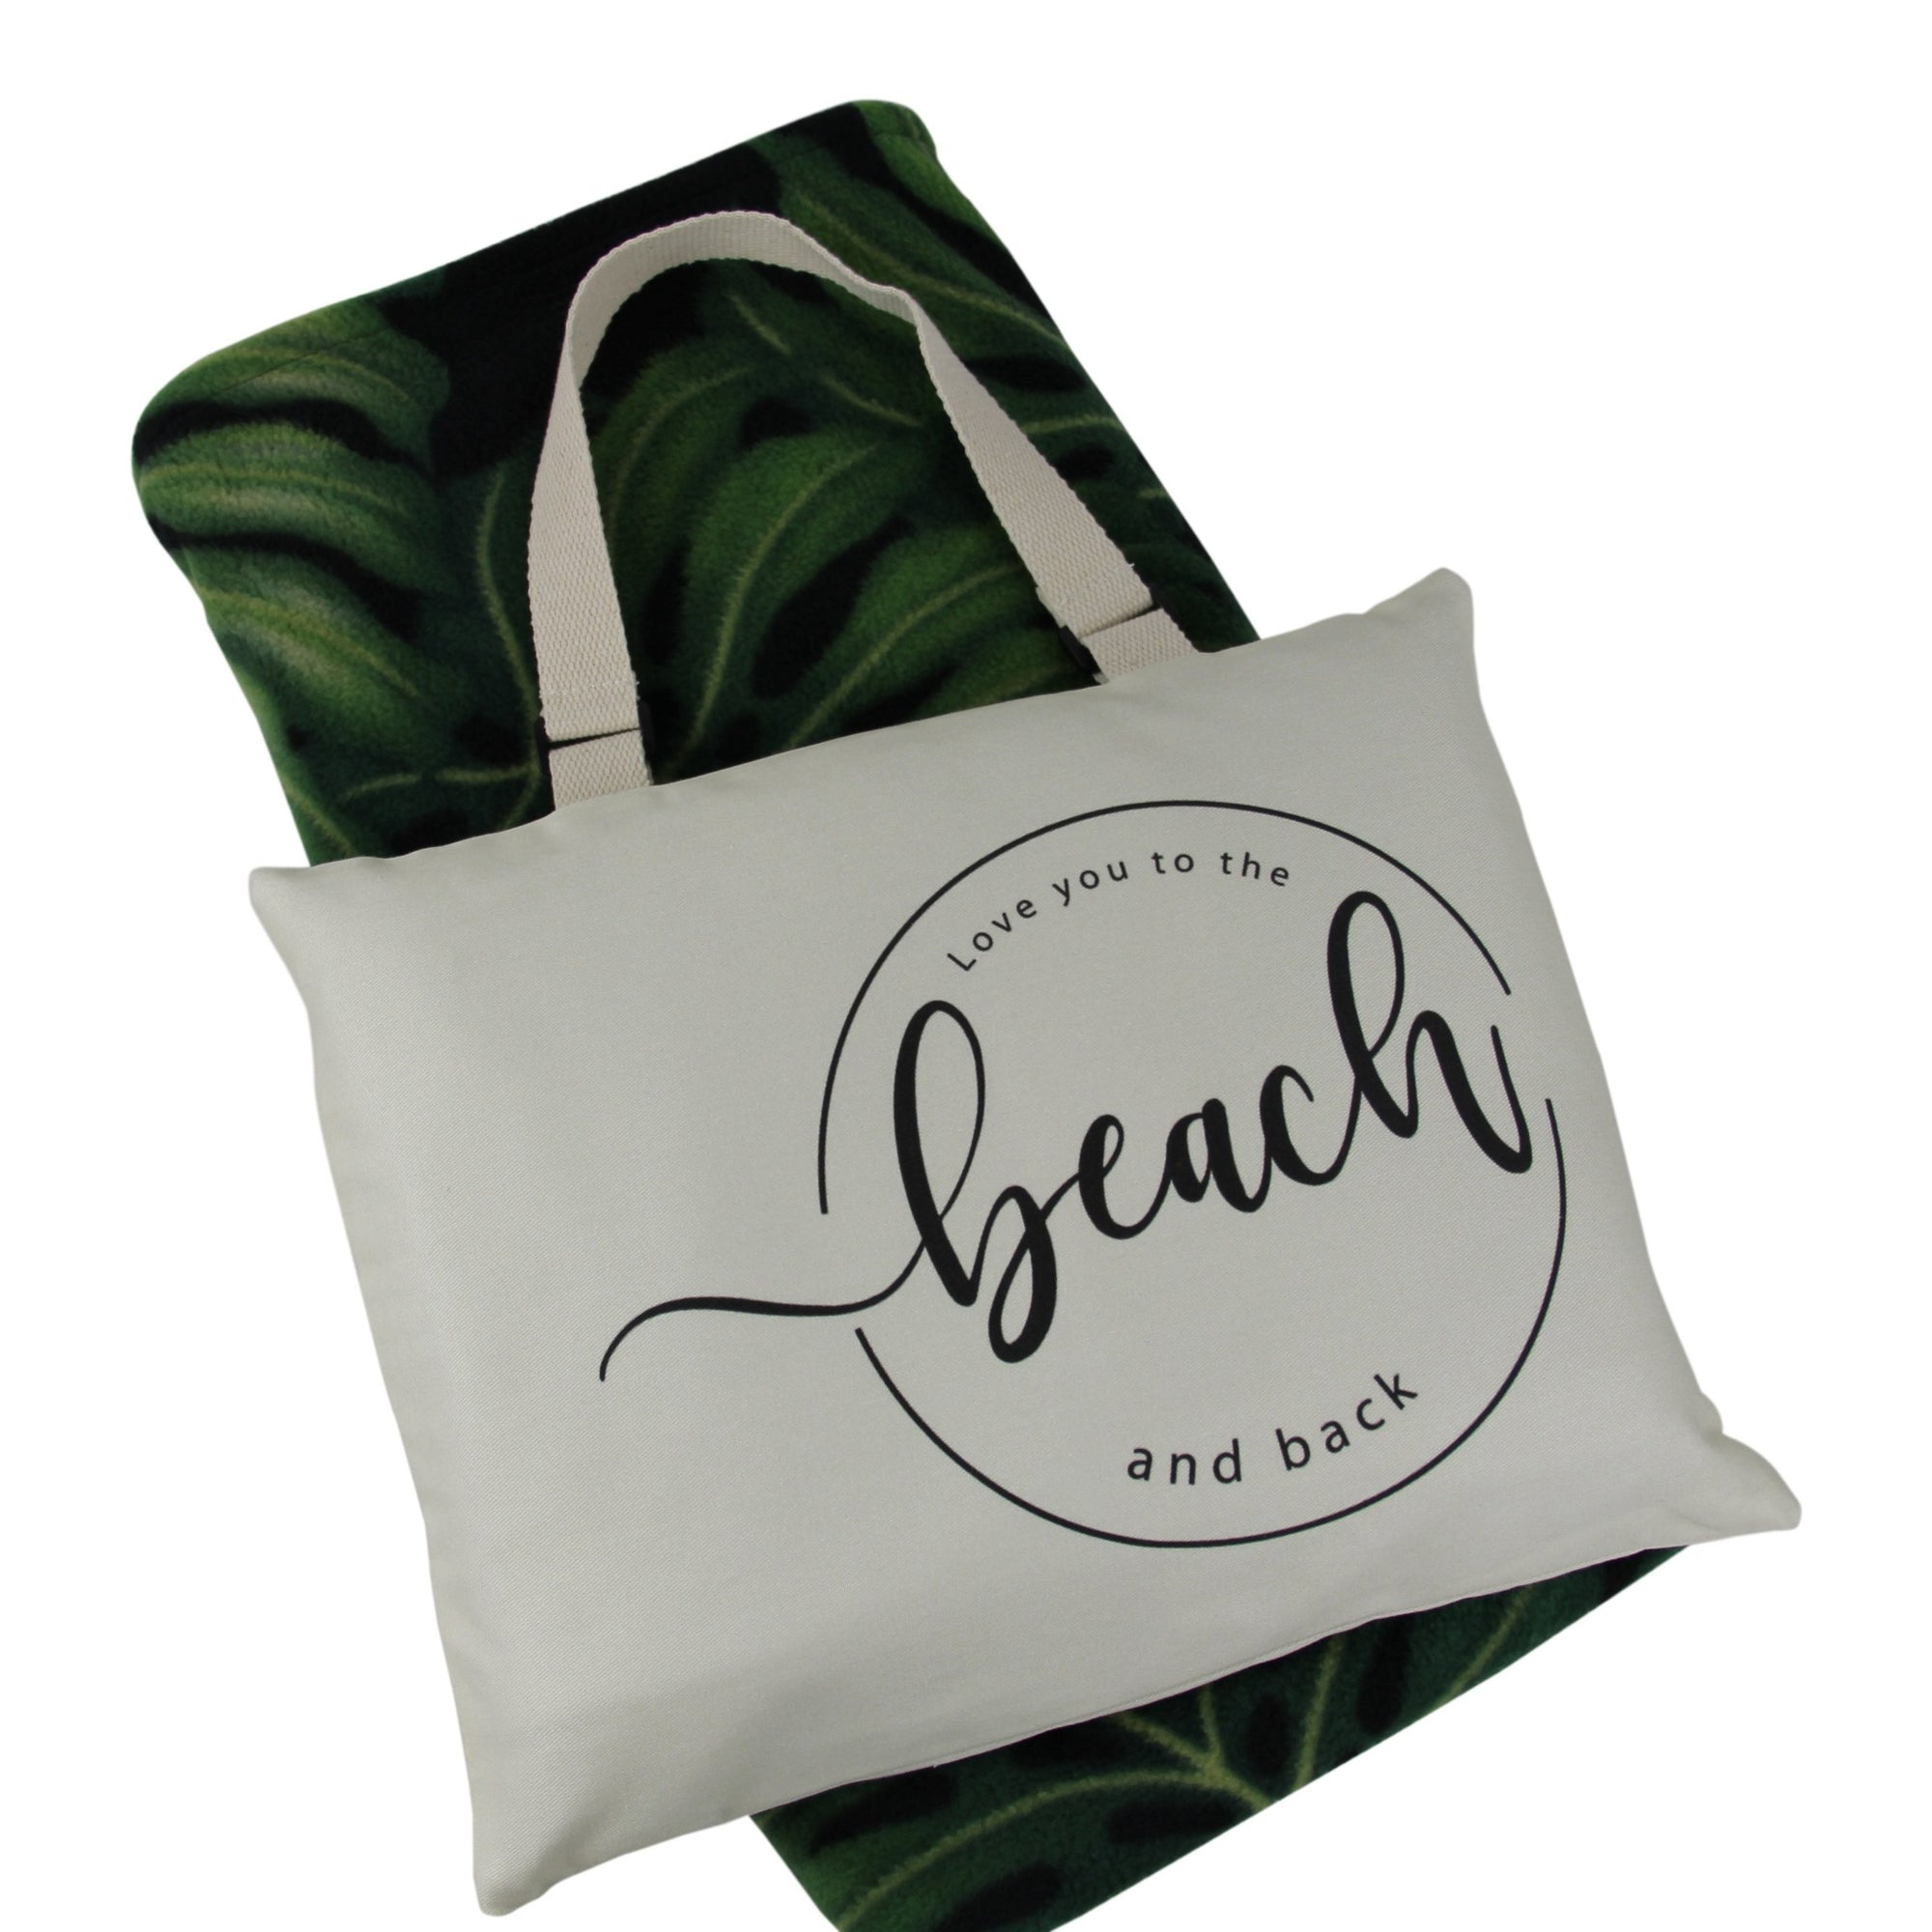 Hali'i Travel blanket set-Love you to the beach and back